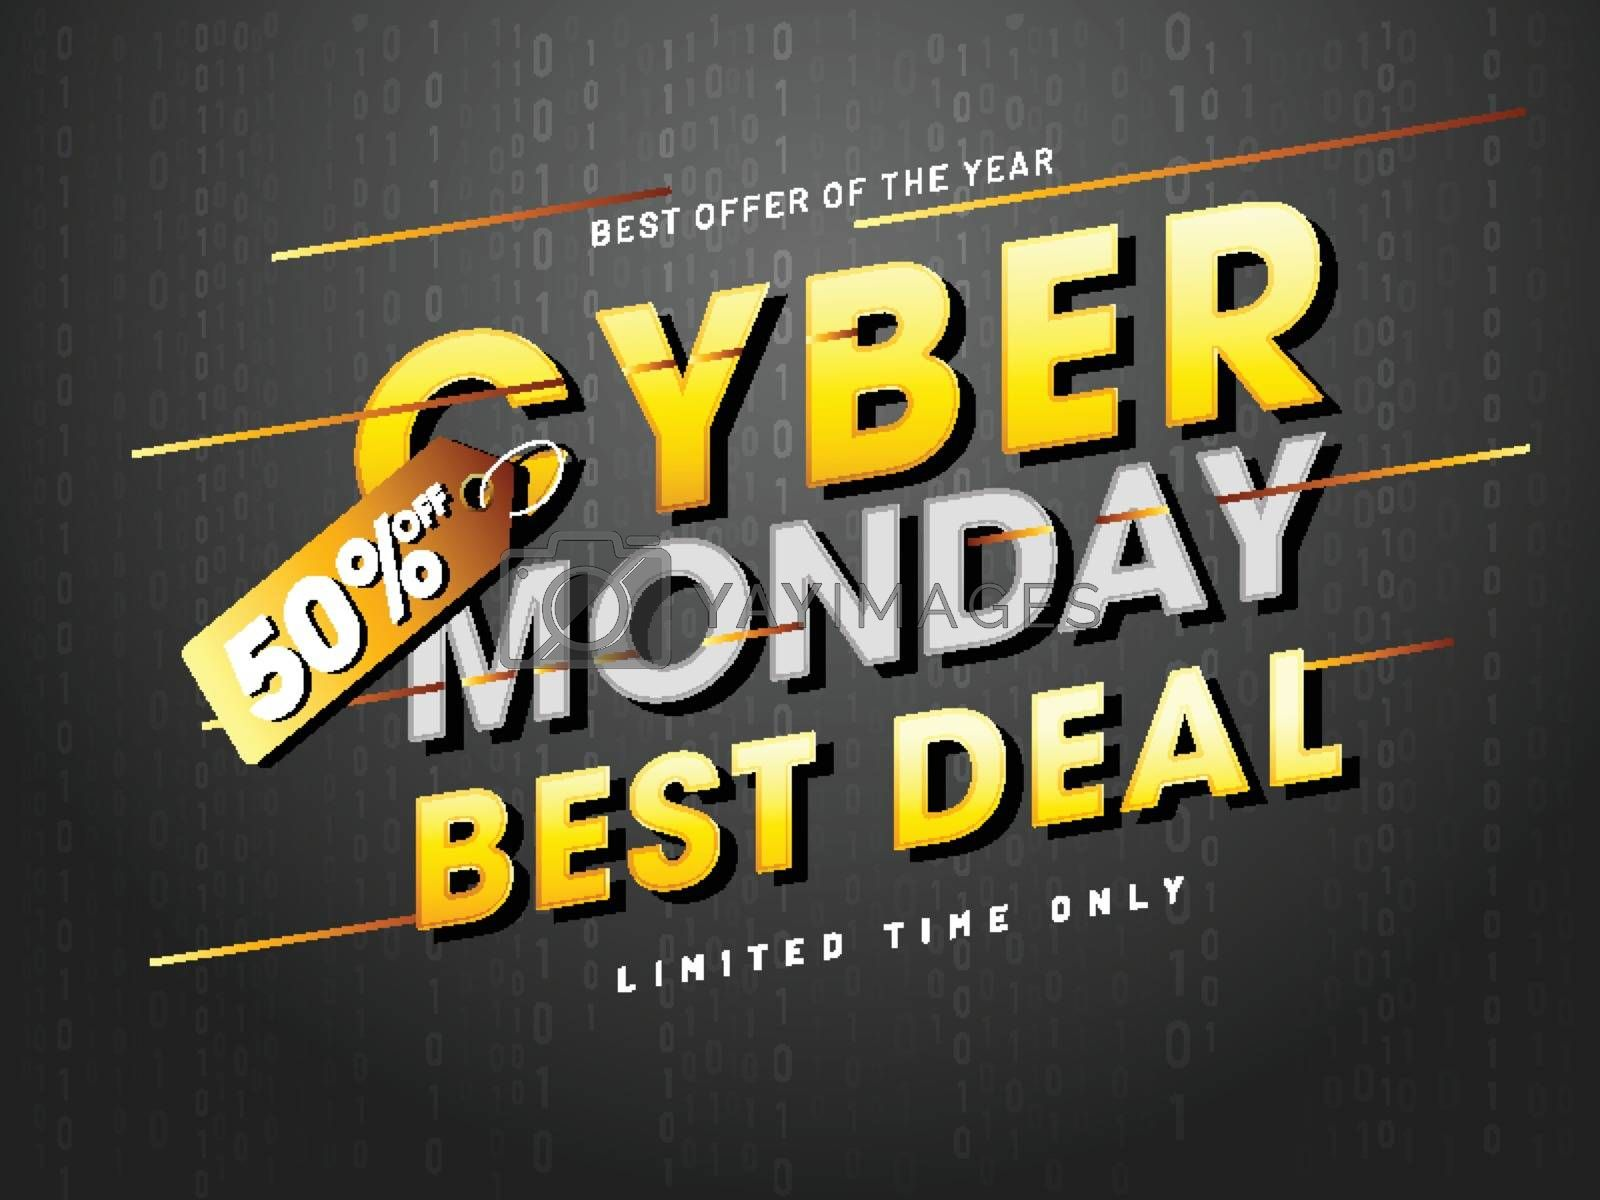 Best deals and offer on Cyber Monday sale with 50% discount offer on black background.